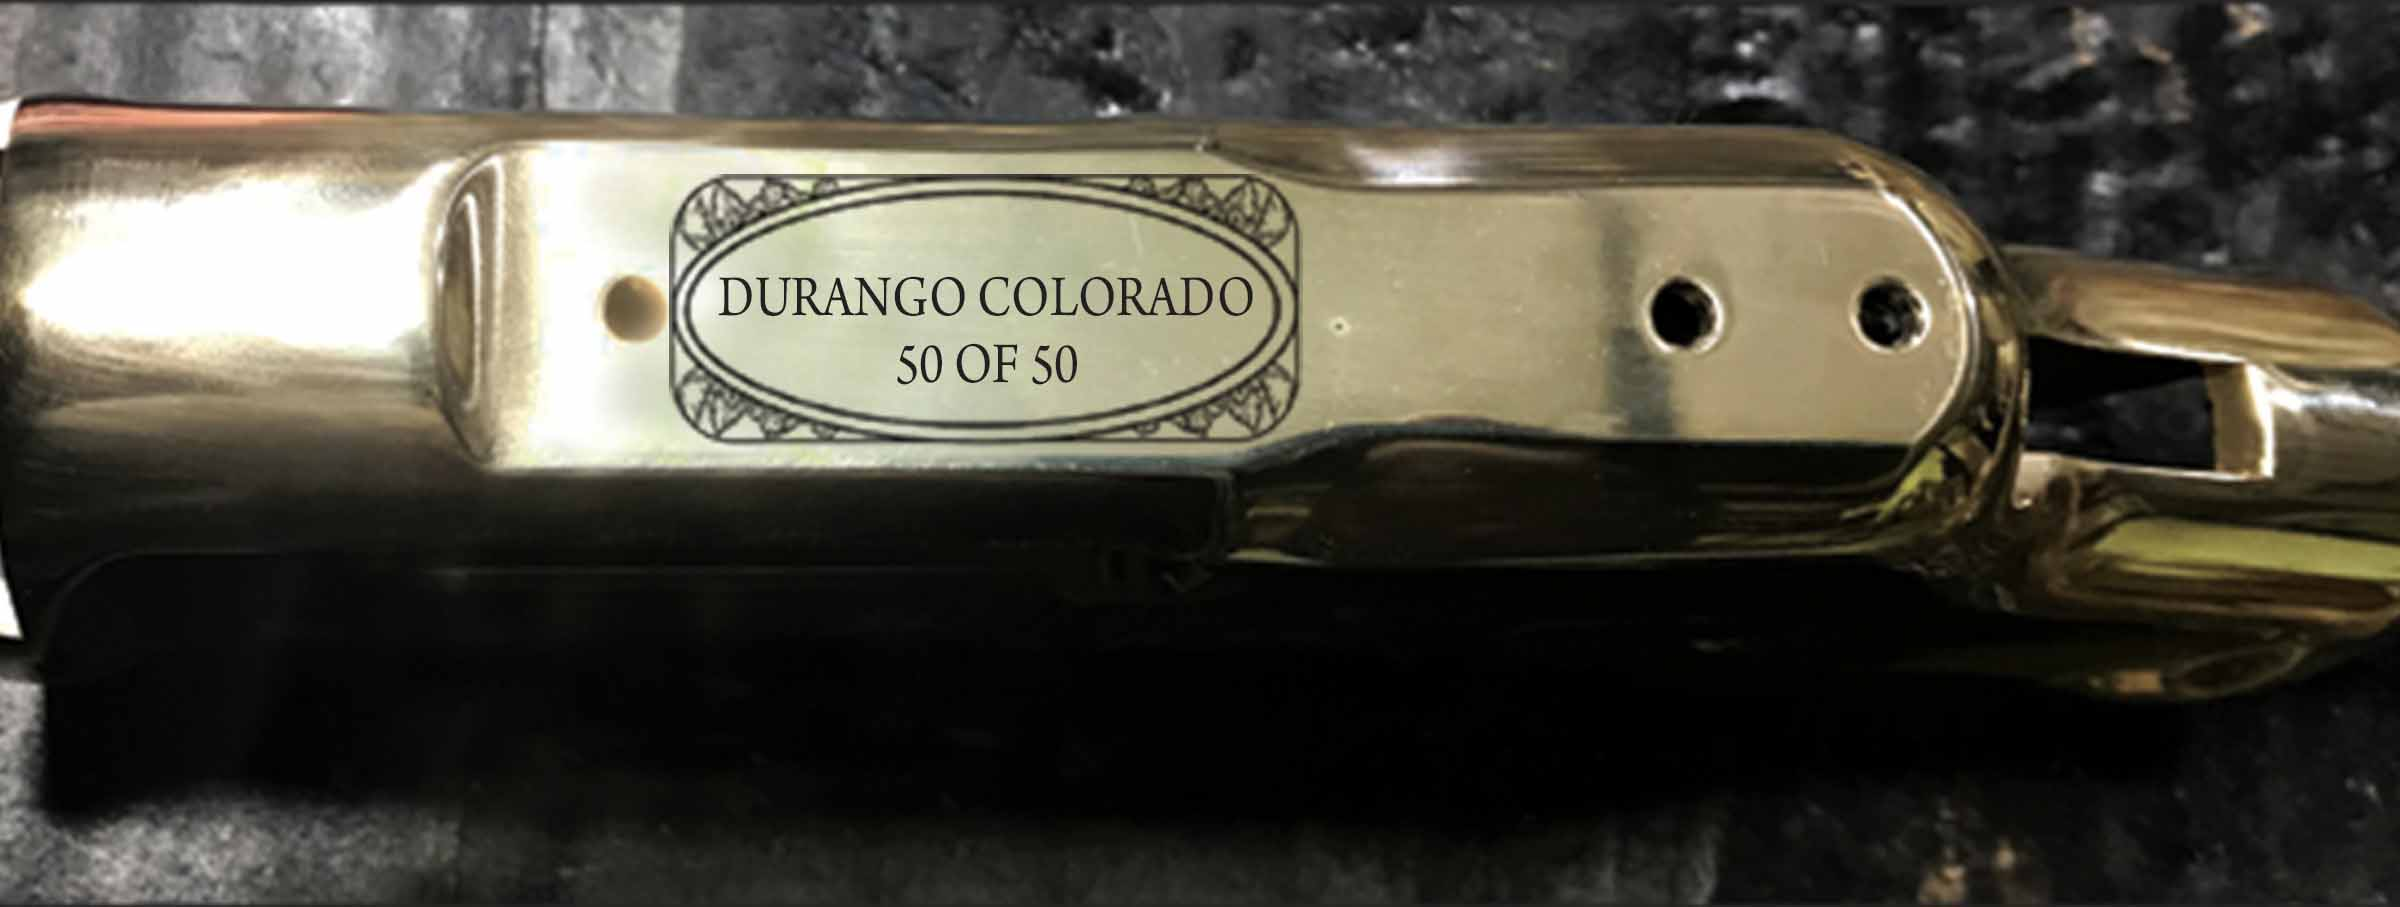 Each Durango, Colorado rifle is individually numbered on Top of Receiver.